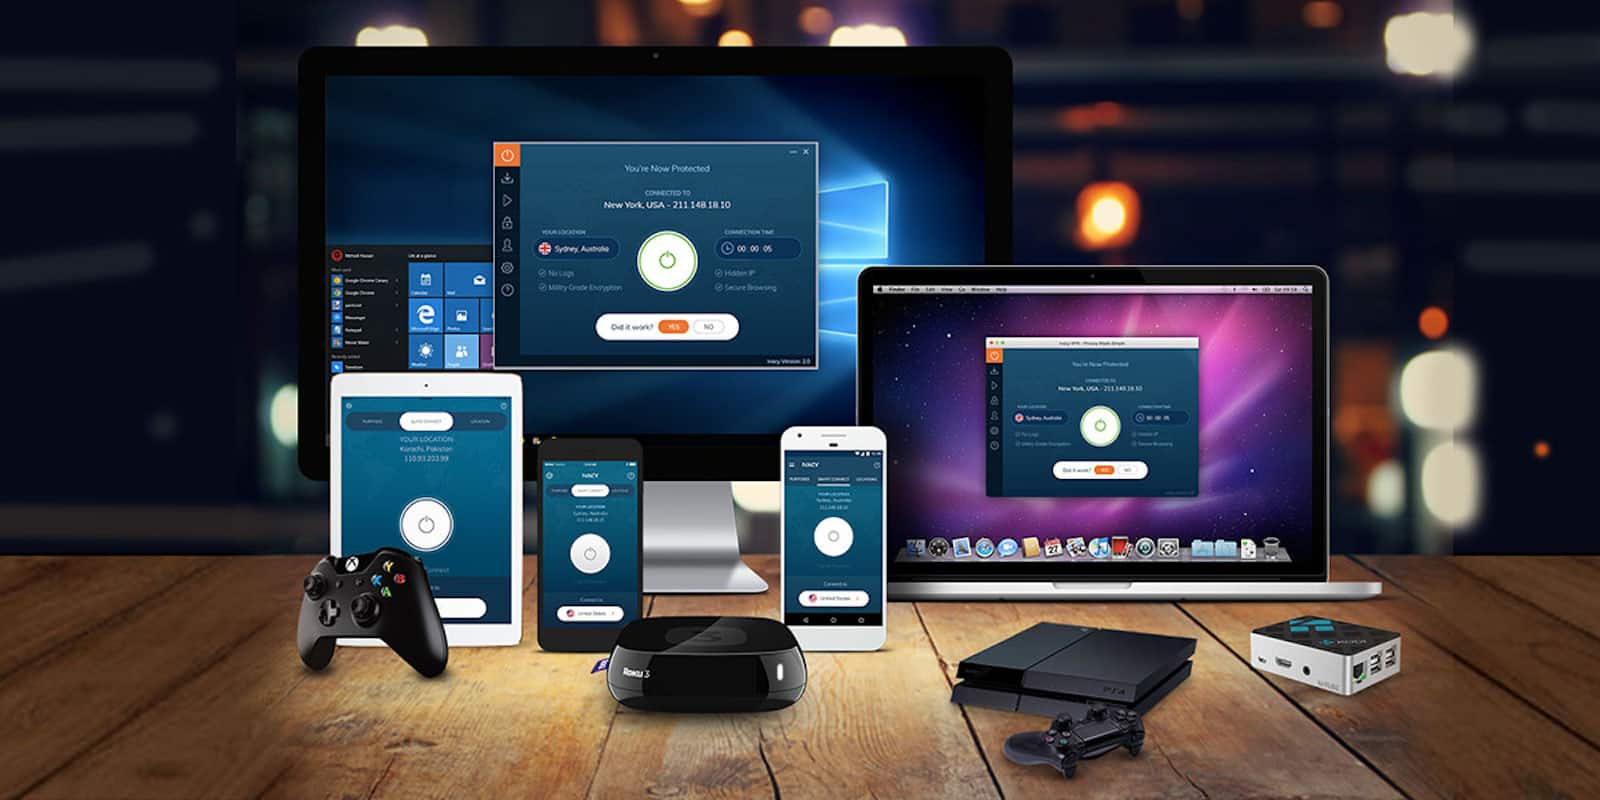 Protect your online activity with a lifetime of VPN protection.